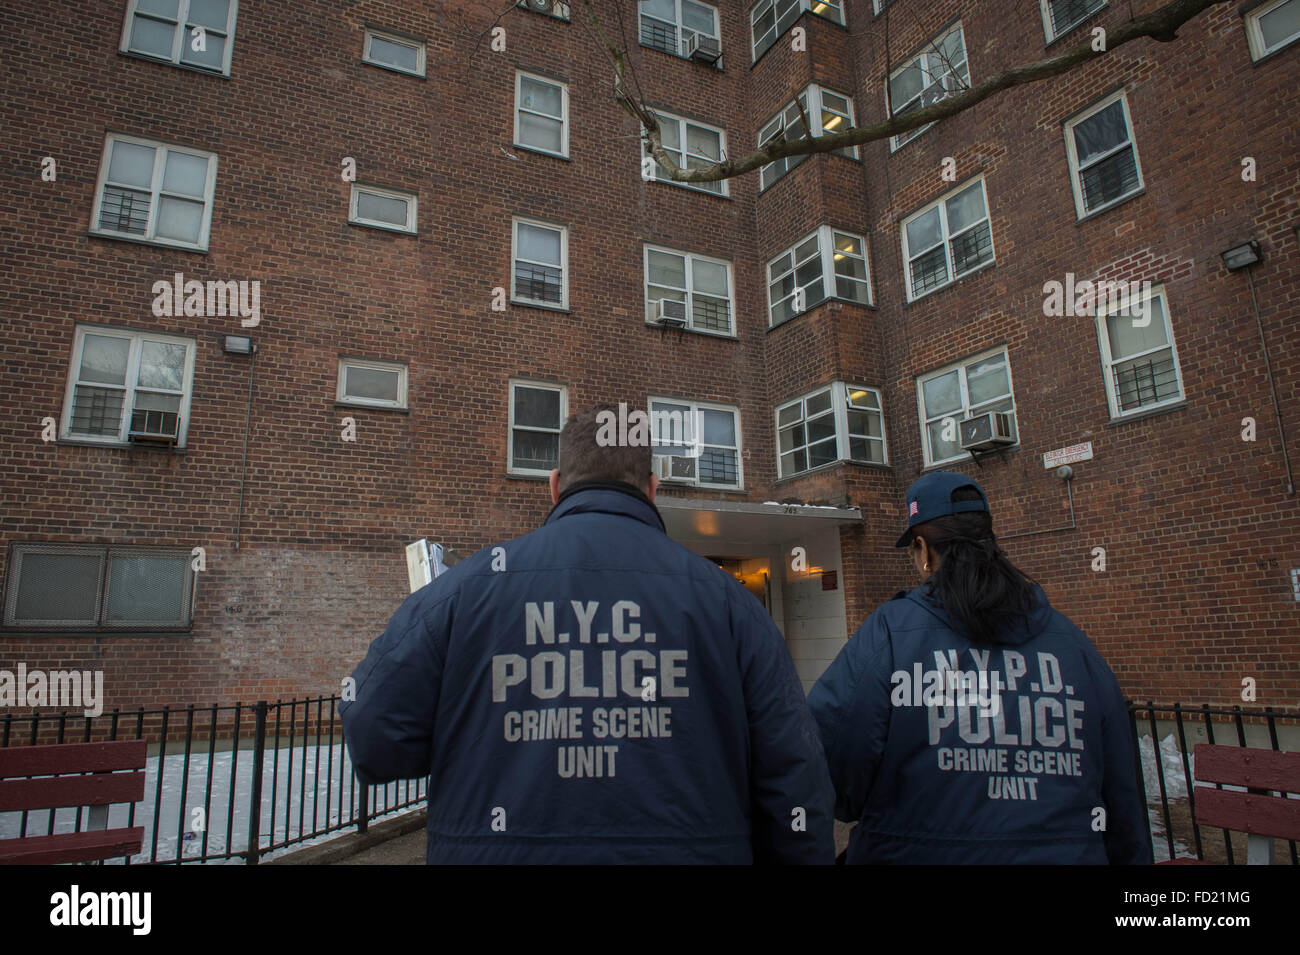 New York, NY, USA. 26th Jan, 2016. NYPD Crime Scene Unit arrives to the scene where a New York City police officer - Stock Image